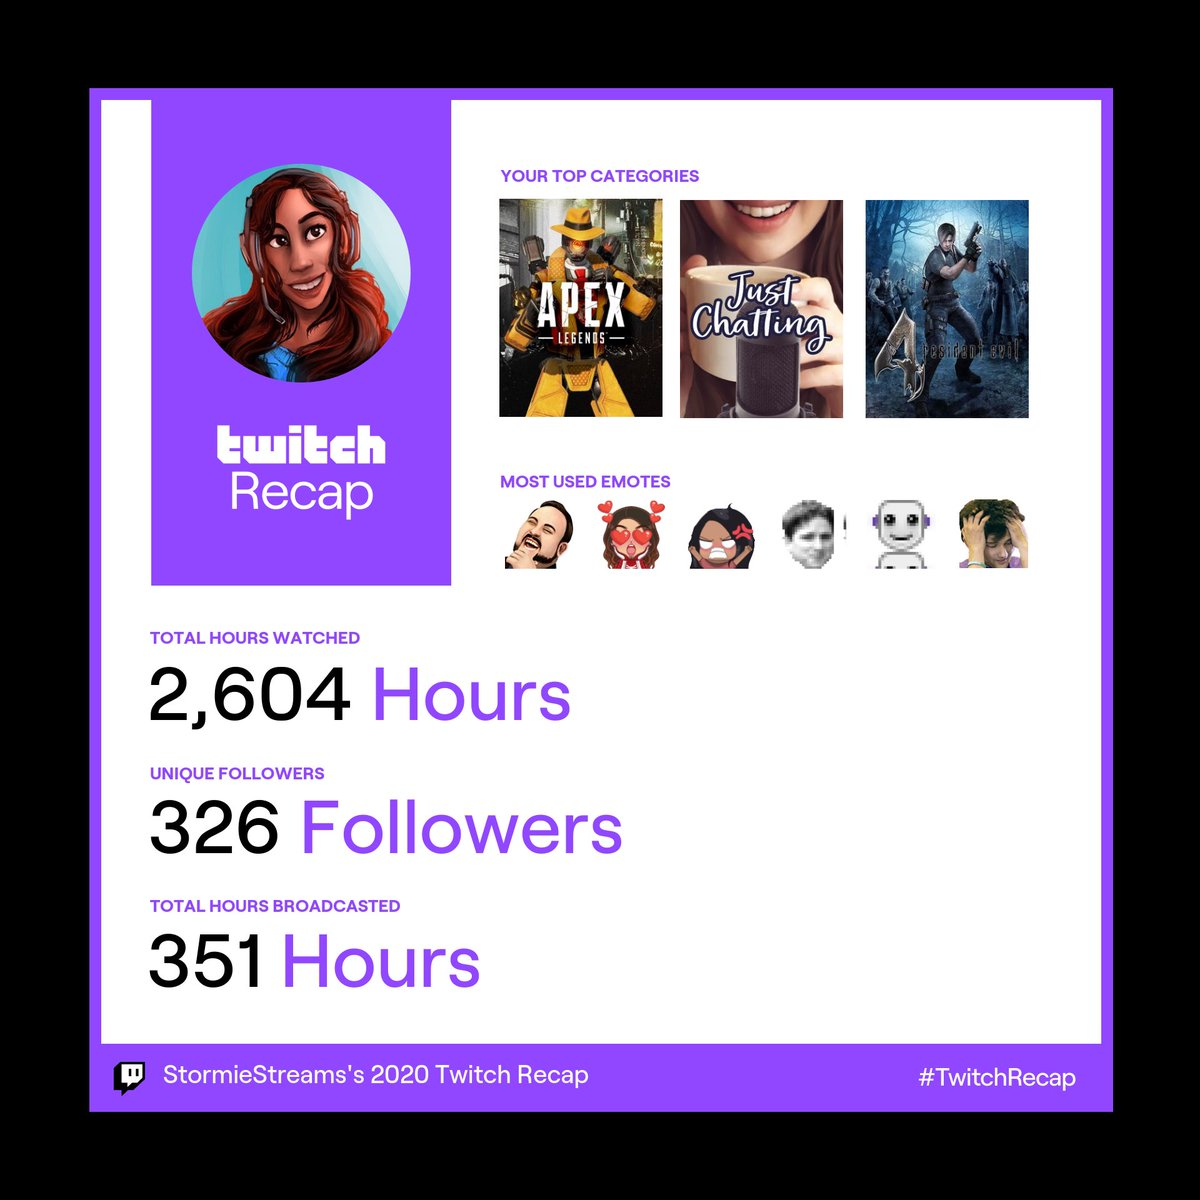 Here's to even more streams in 2021!! See you soon 😎 #TwitchRecap